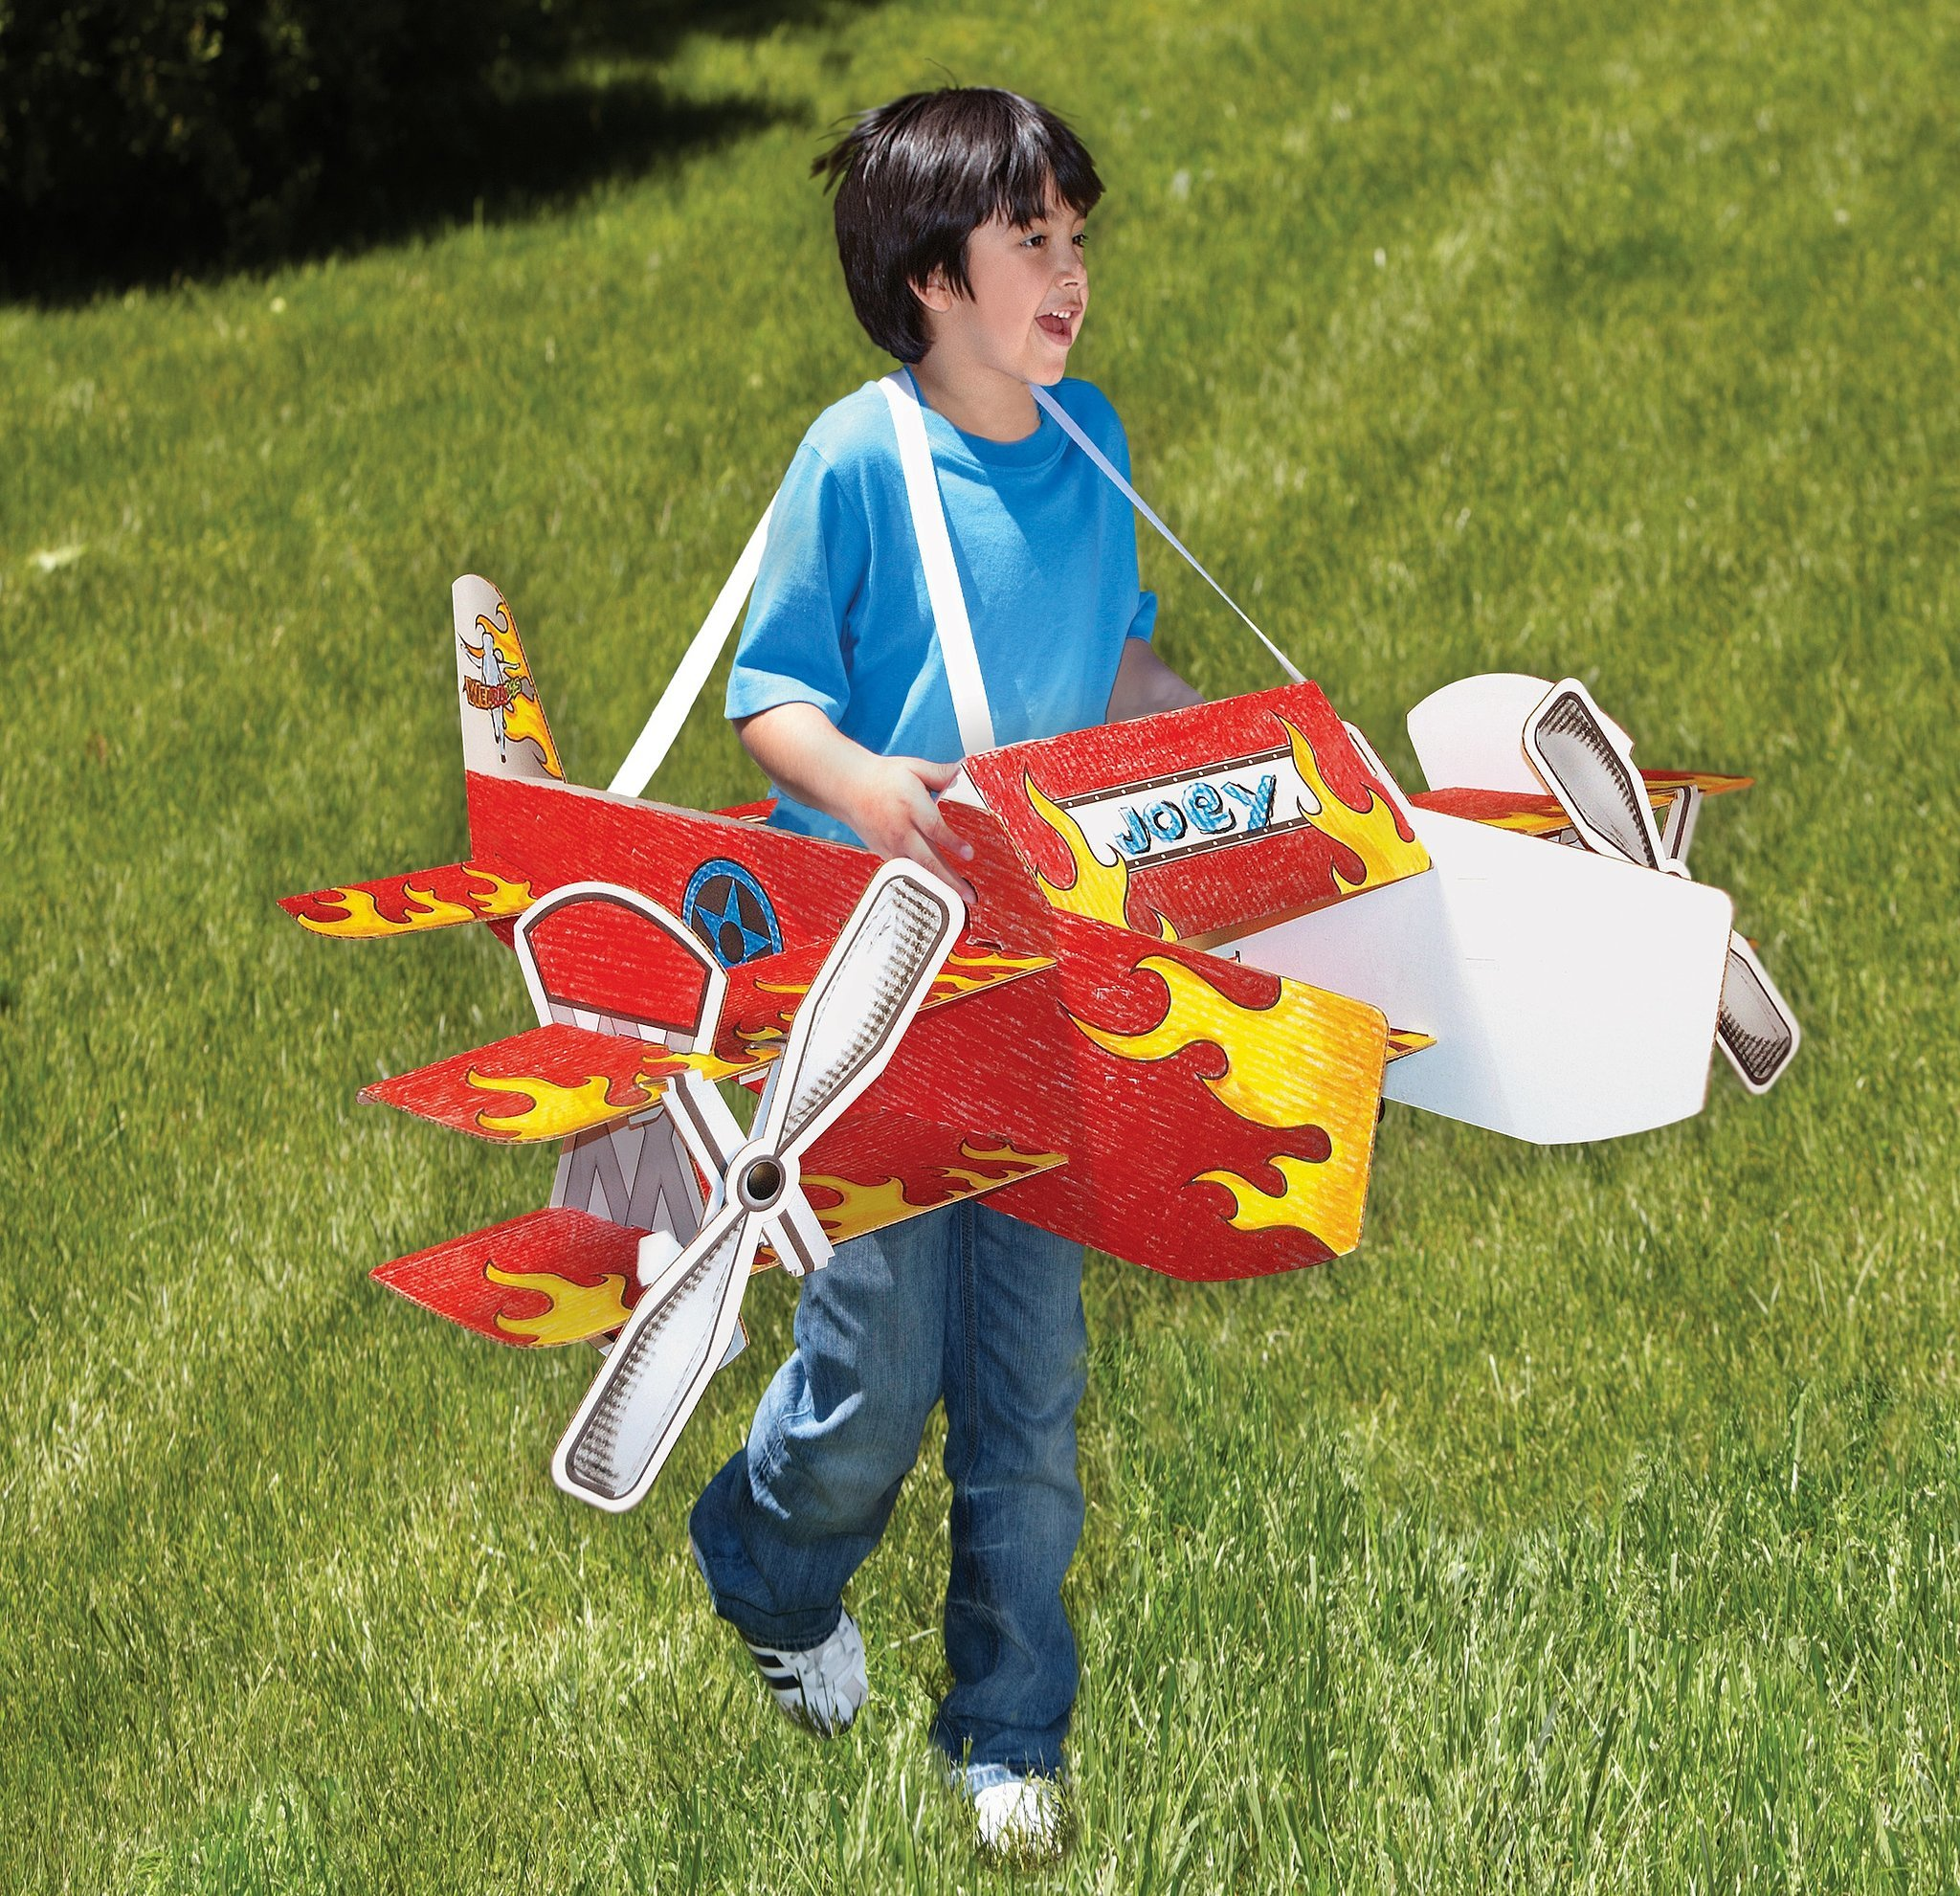 Airplane Toys For 3 Year Olds : For year olds wearables stunt plane usa corrugated